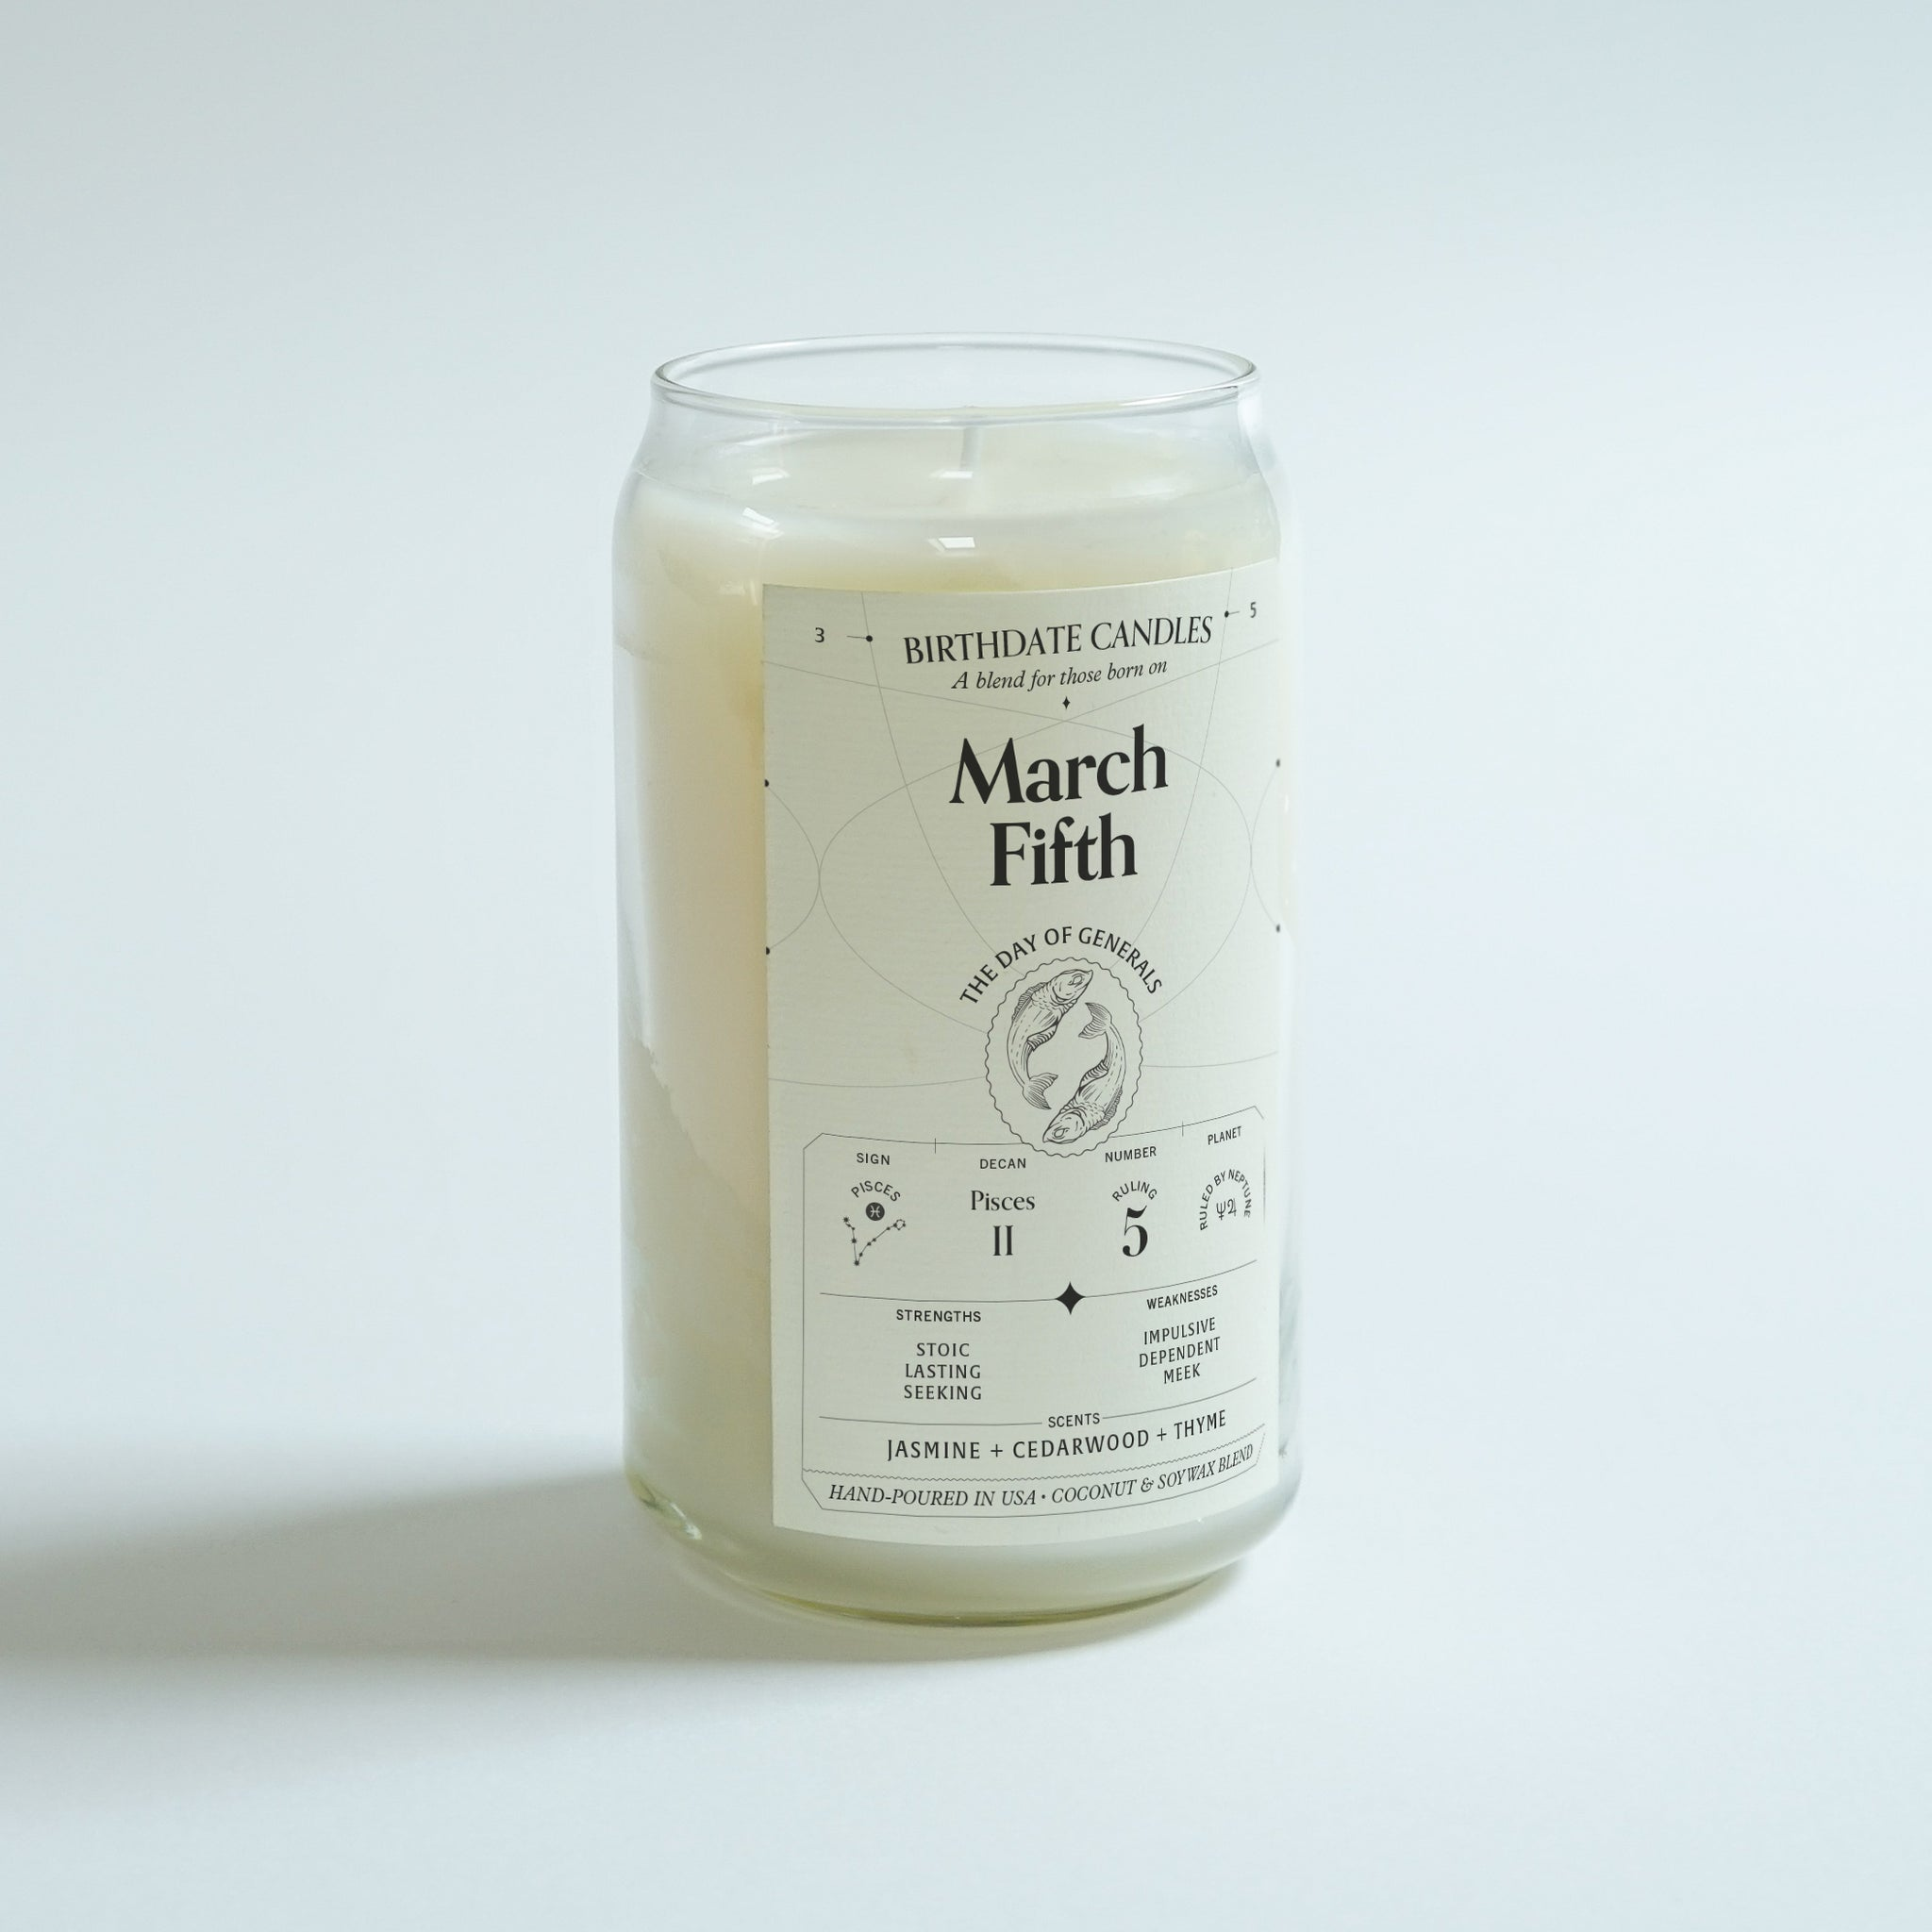 The March Fifth Birthday Candle